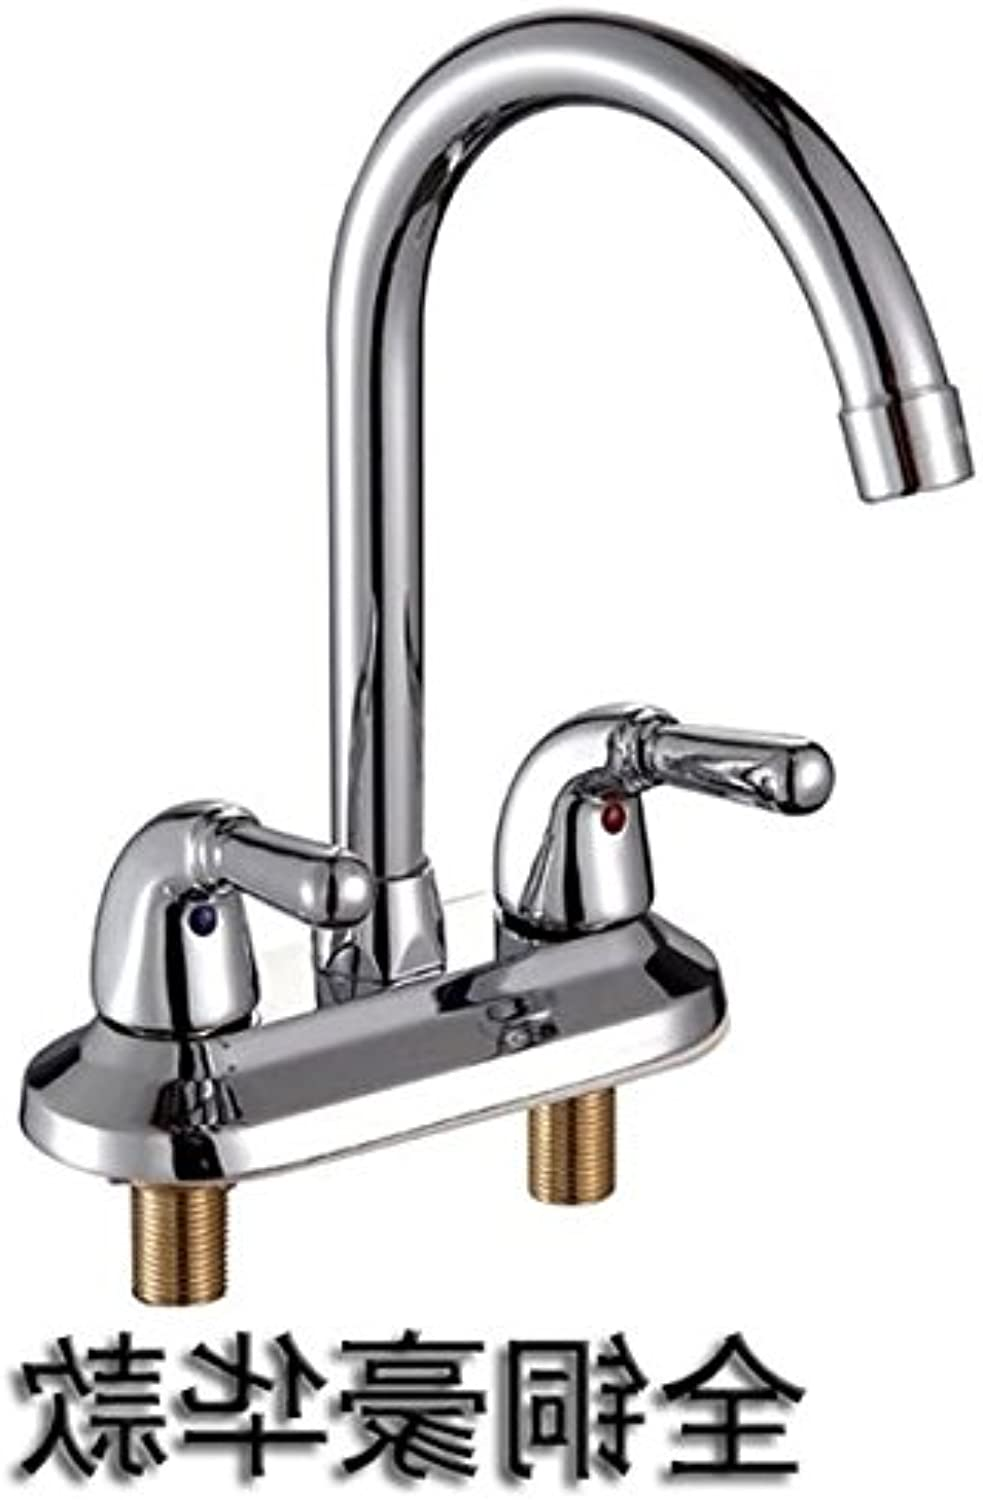 NewBorn Faucet Kitchen Bathroom Sink Mixer Tap Double-Double-Hole Full Copper Basin Stainless Steel Chrome Platedc